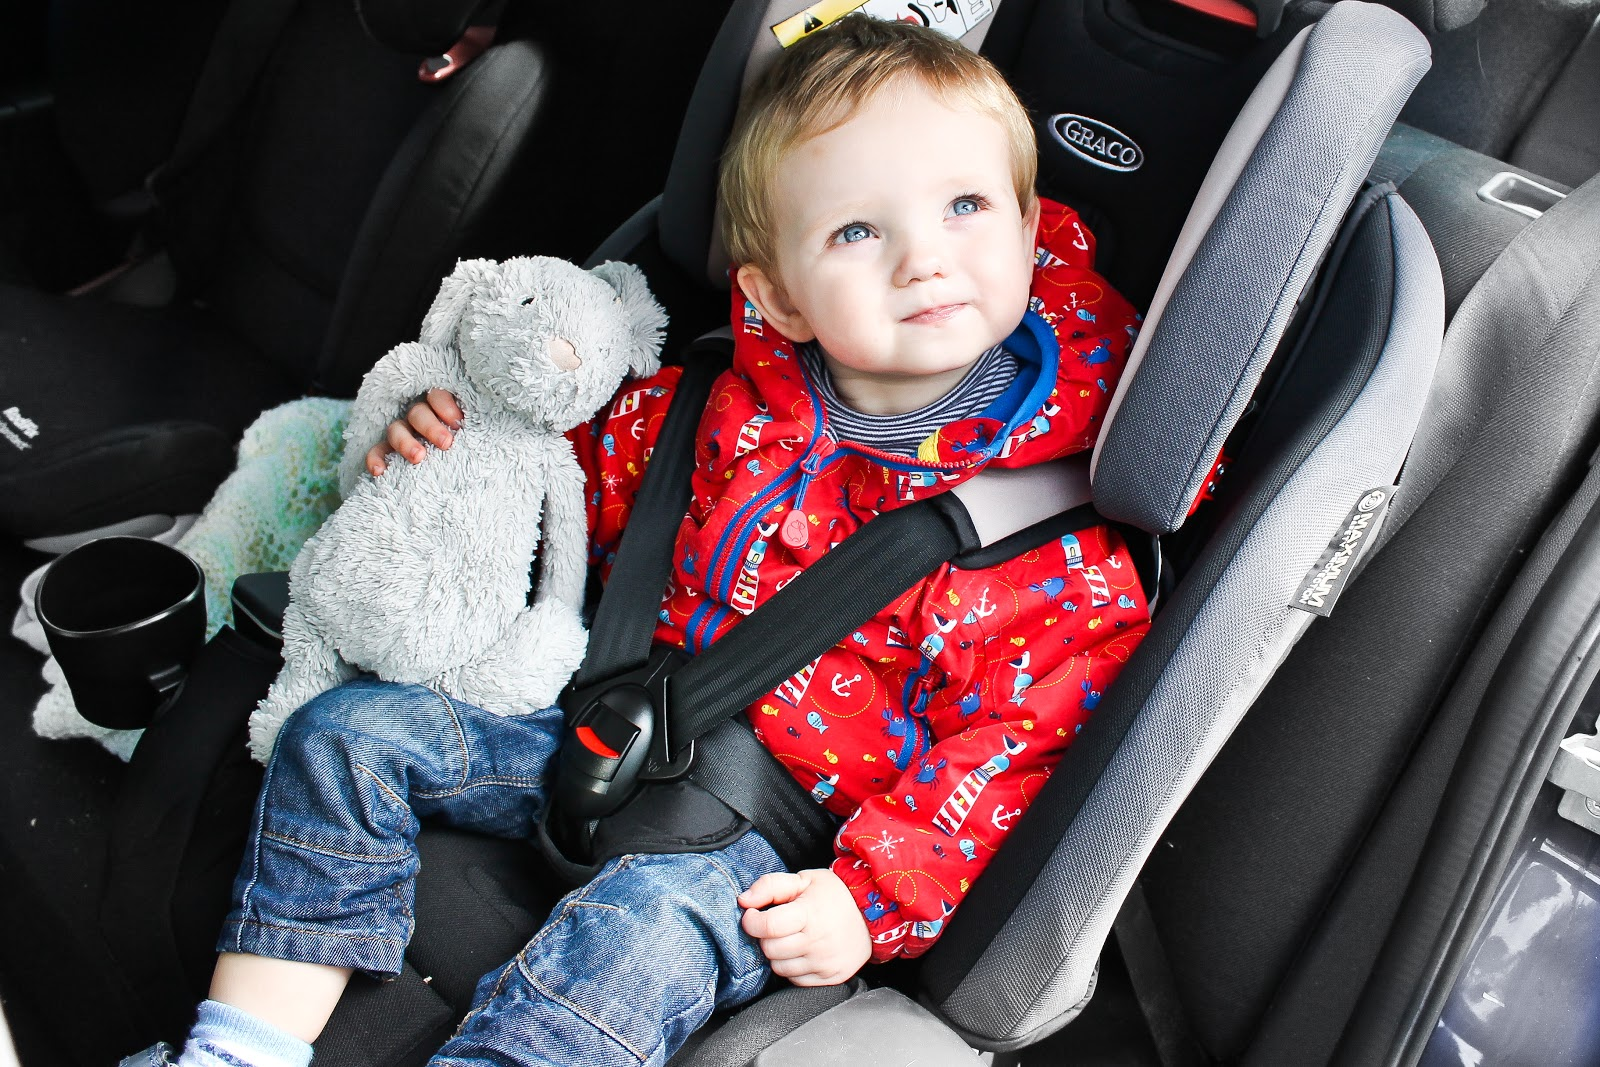 Graco Milestone Car Seat Isofix Product Feature Graco All In One Milestone Car Seat Review